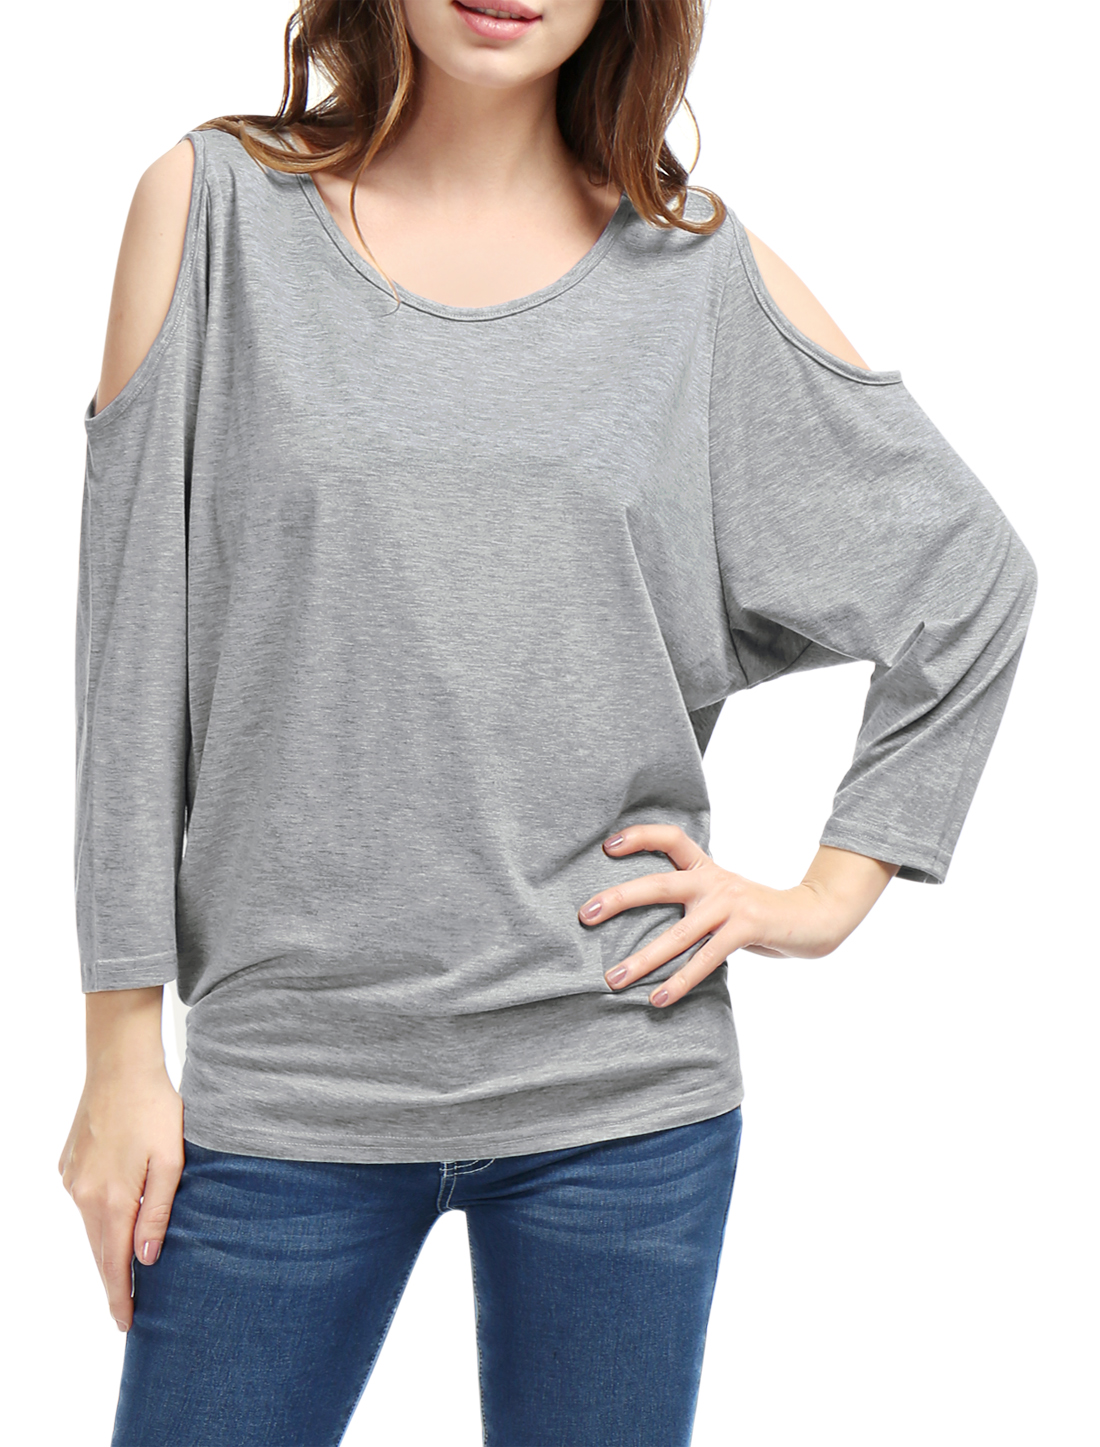 Women Cut out Shoulder Pullover Bat Sleeve Blouse Shirt Gray L